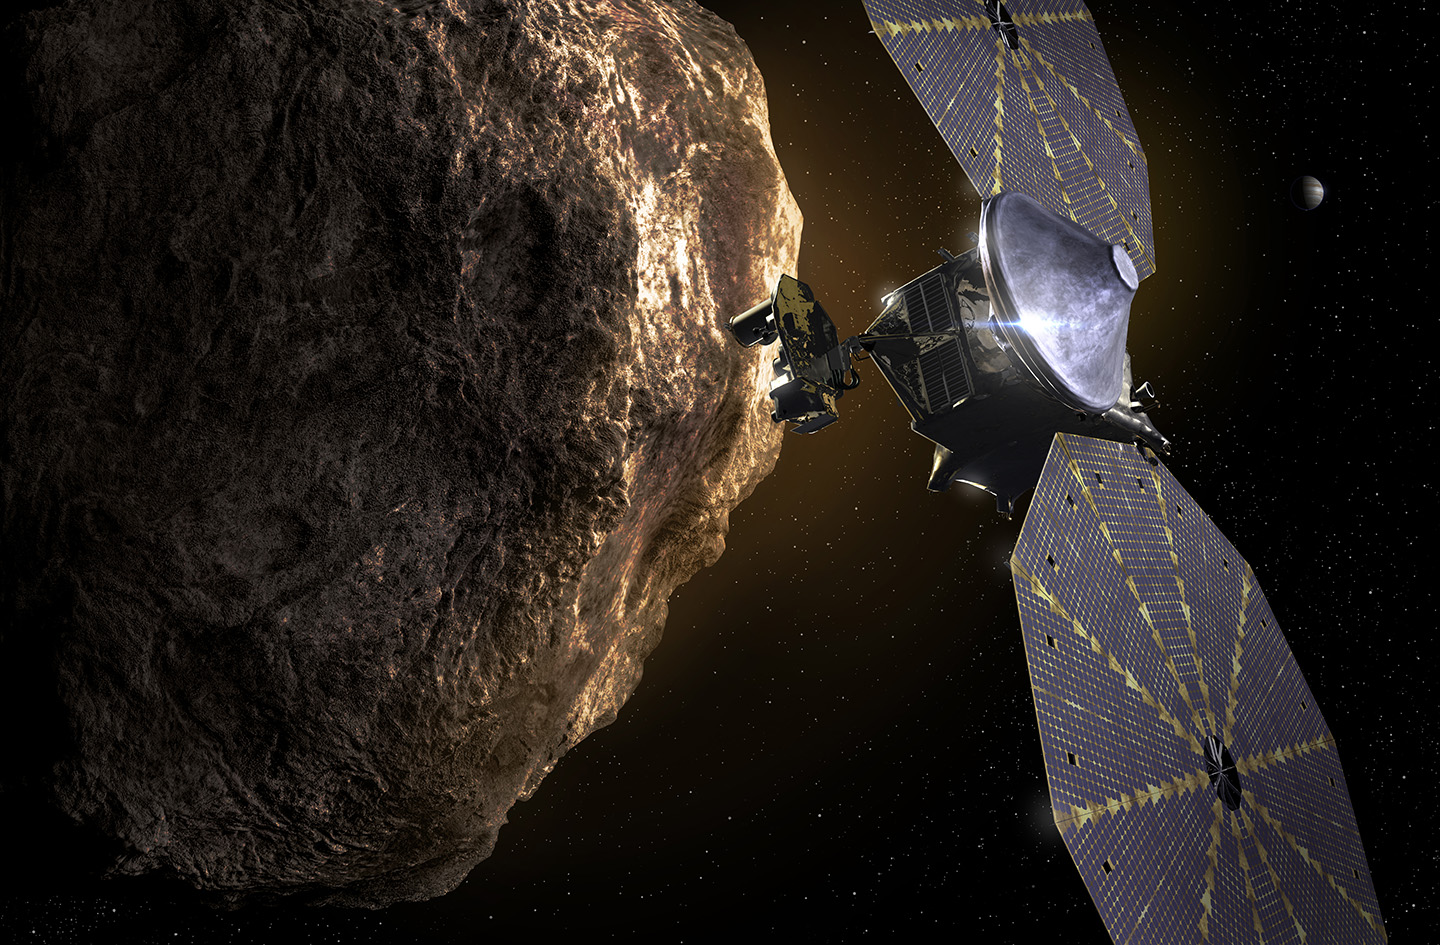 An artist's rendition of the Lucy spacecraft visiting a distant asteroid.